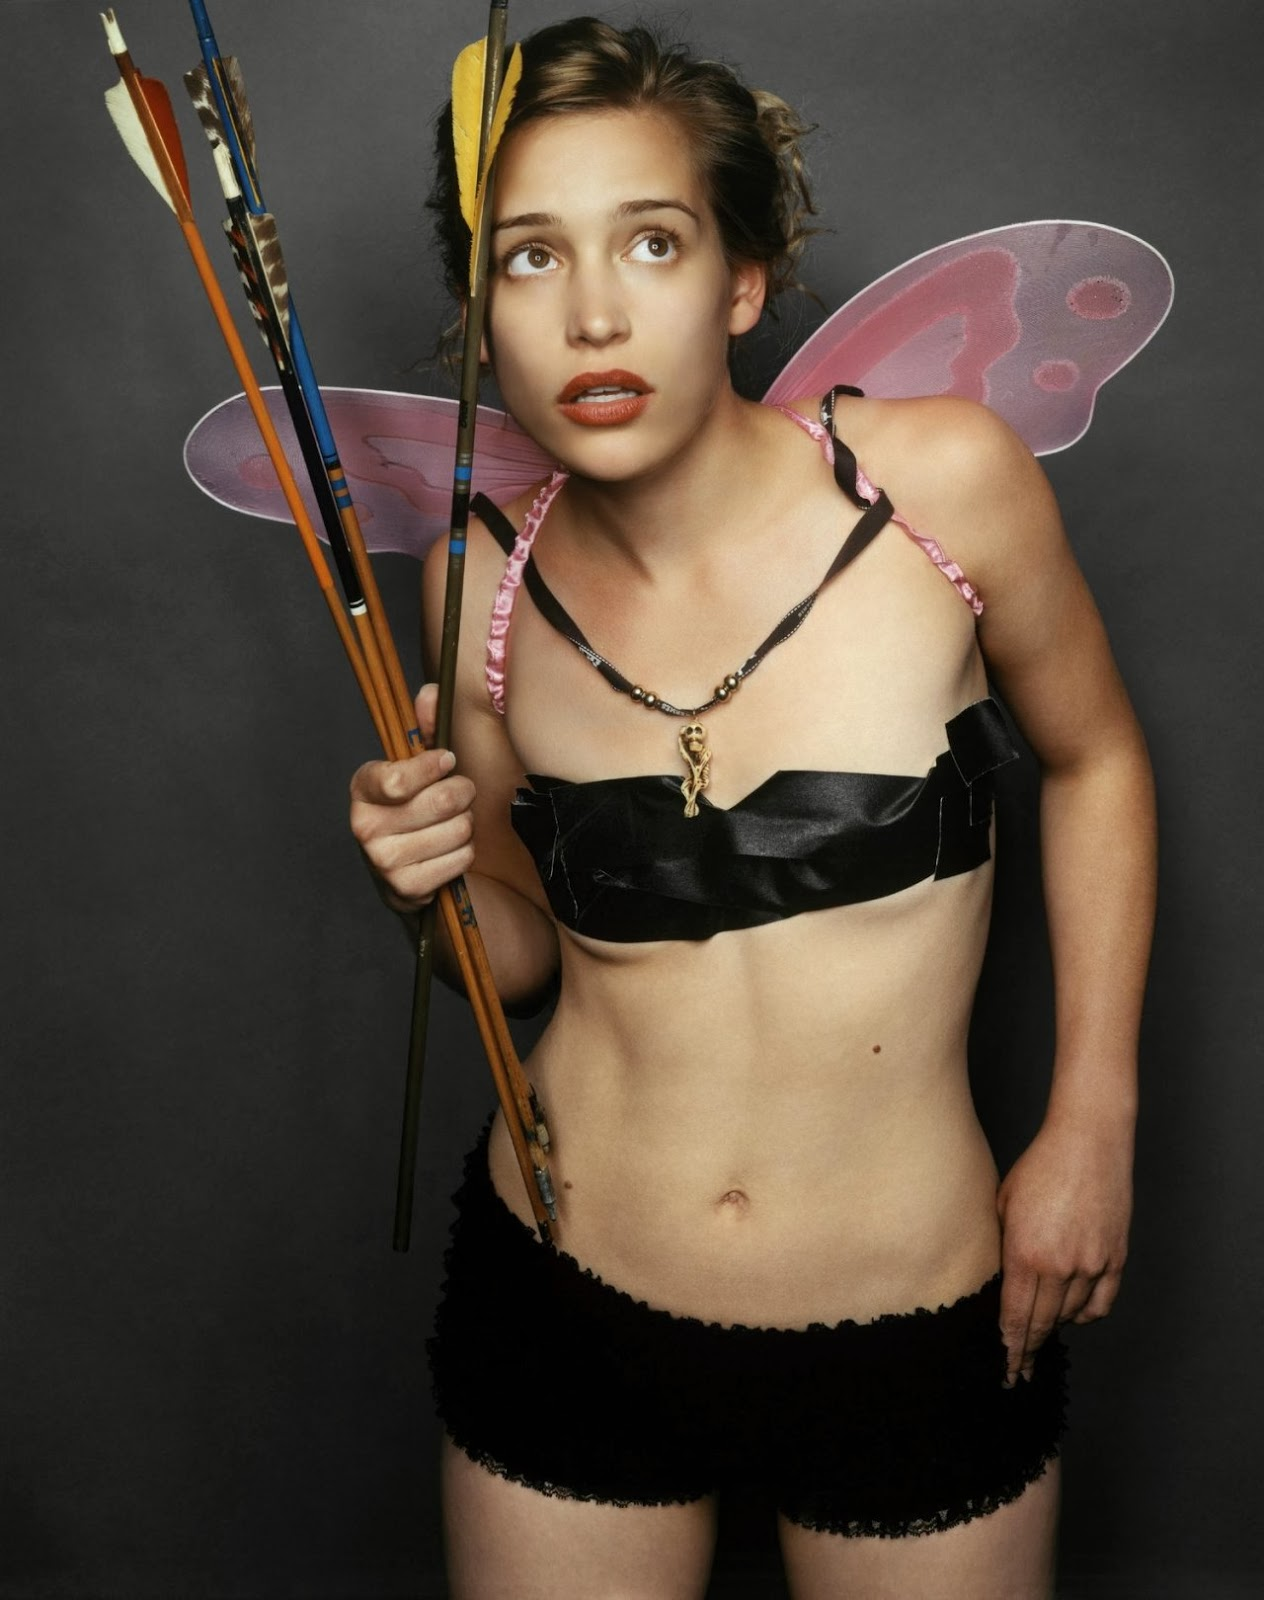 hollywood stars piper perabo - photo #9